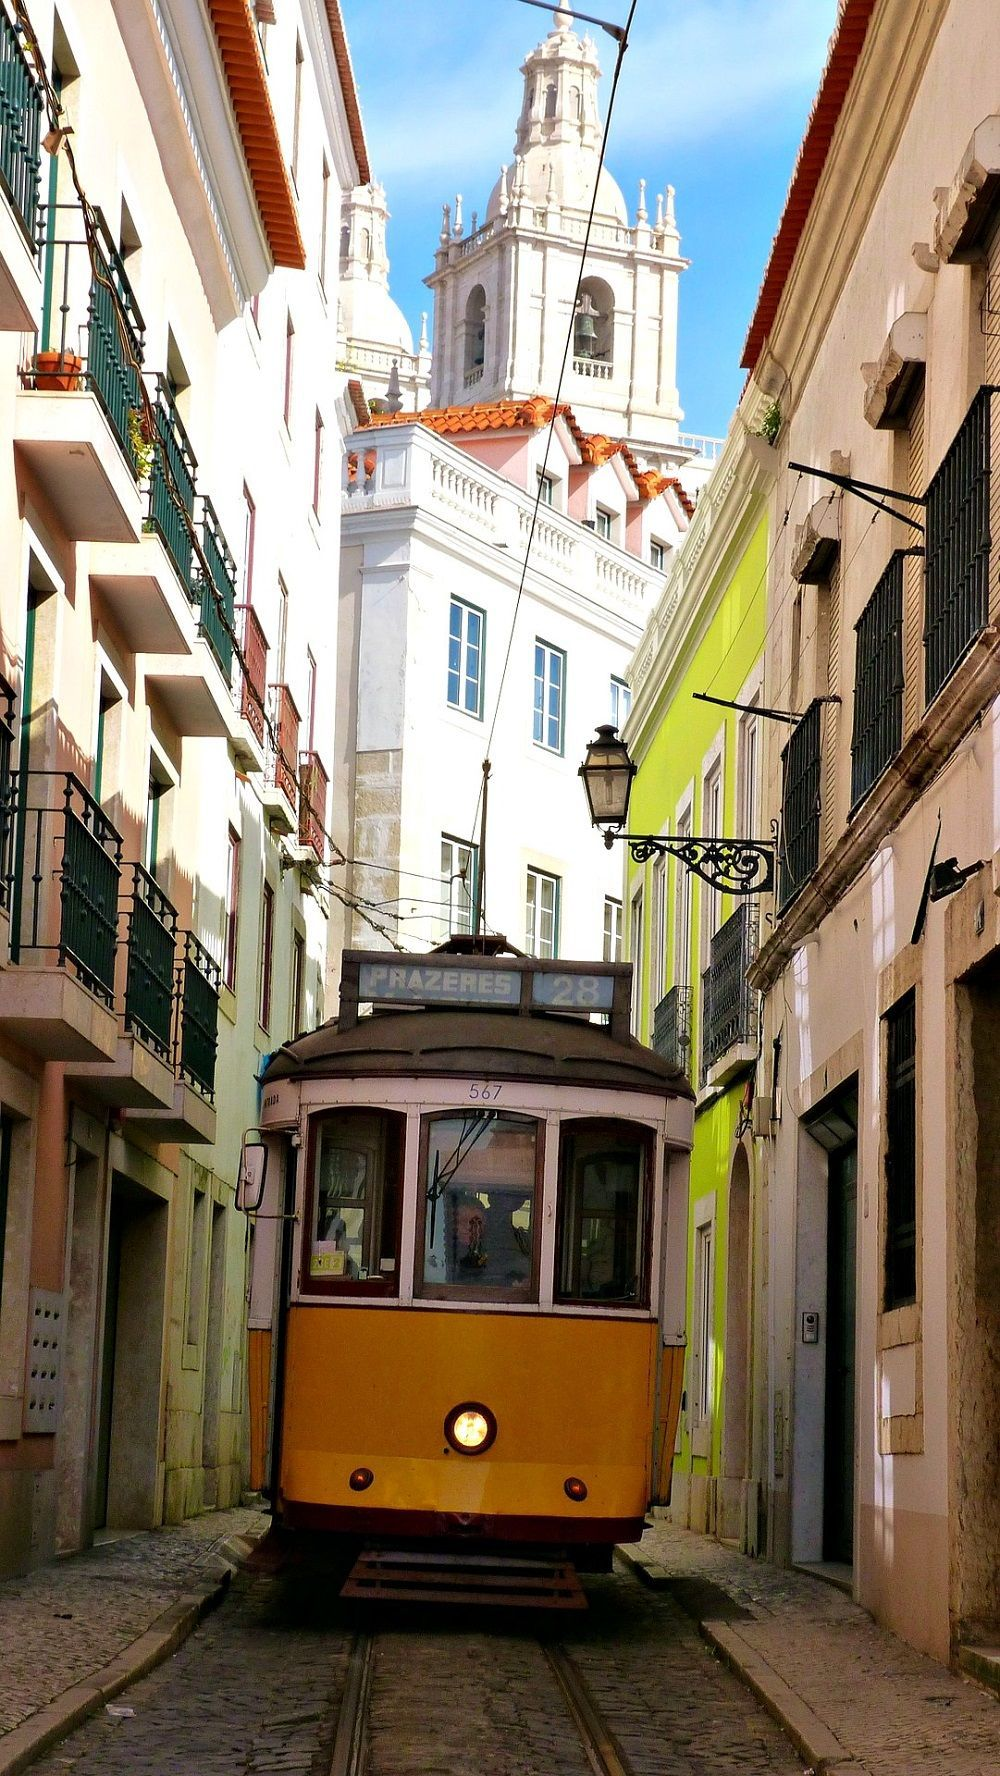 The wonderful city of Faro. Portugal is waiting for guests